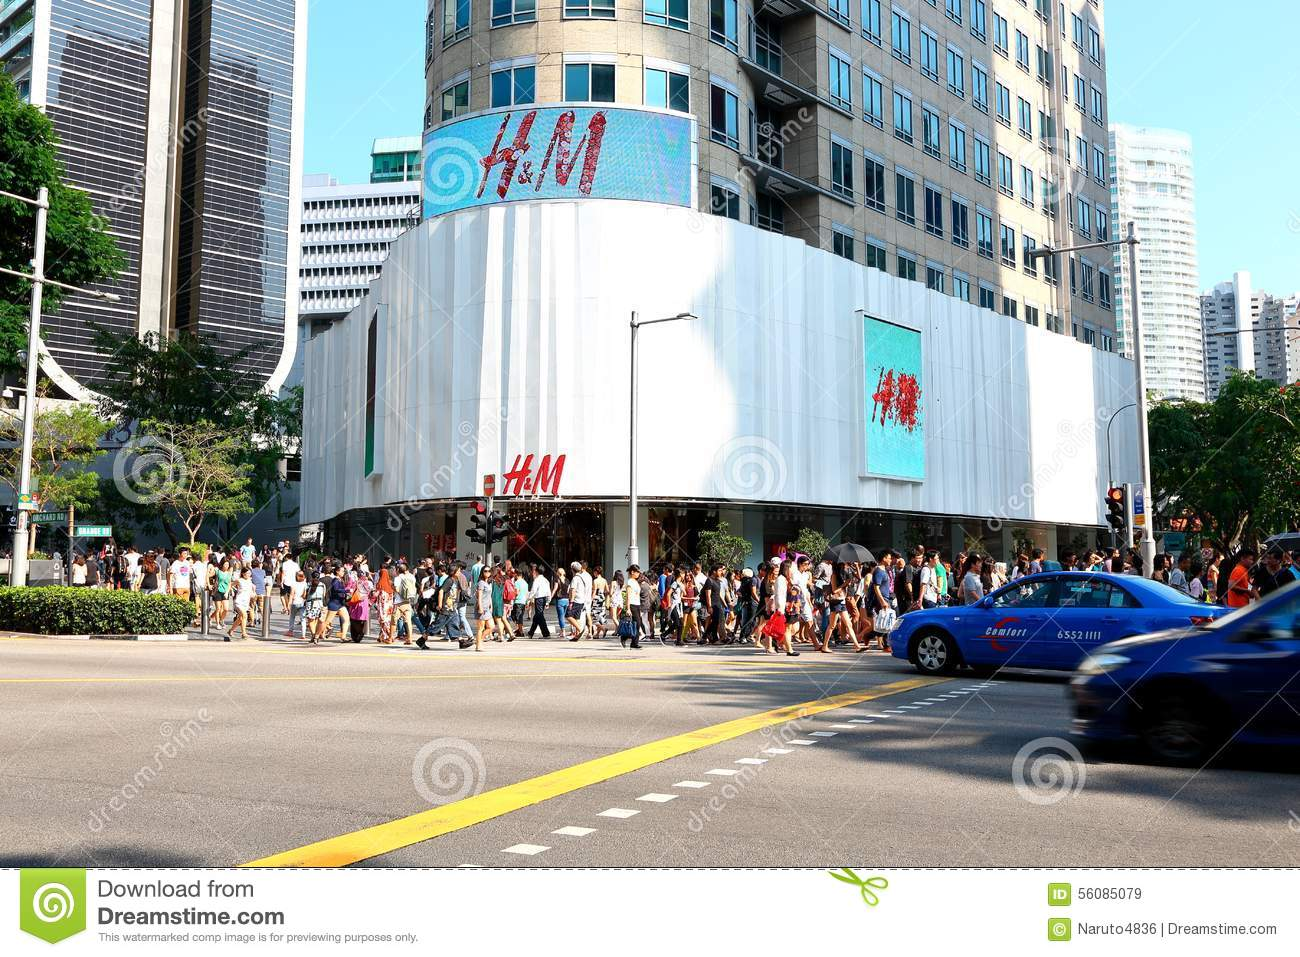 List of H&m sale events, promotions, price list and other happenings in Singapore. Last updated October H&M Past Event Unknown End Date H&M has started their sale featuring discounts of up to 50% off on selected Ladies, Mens and Kids items!